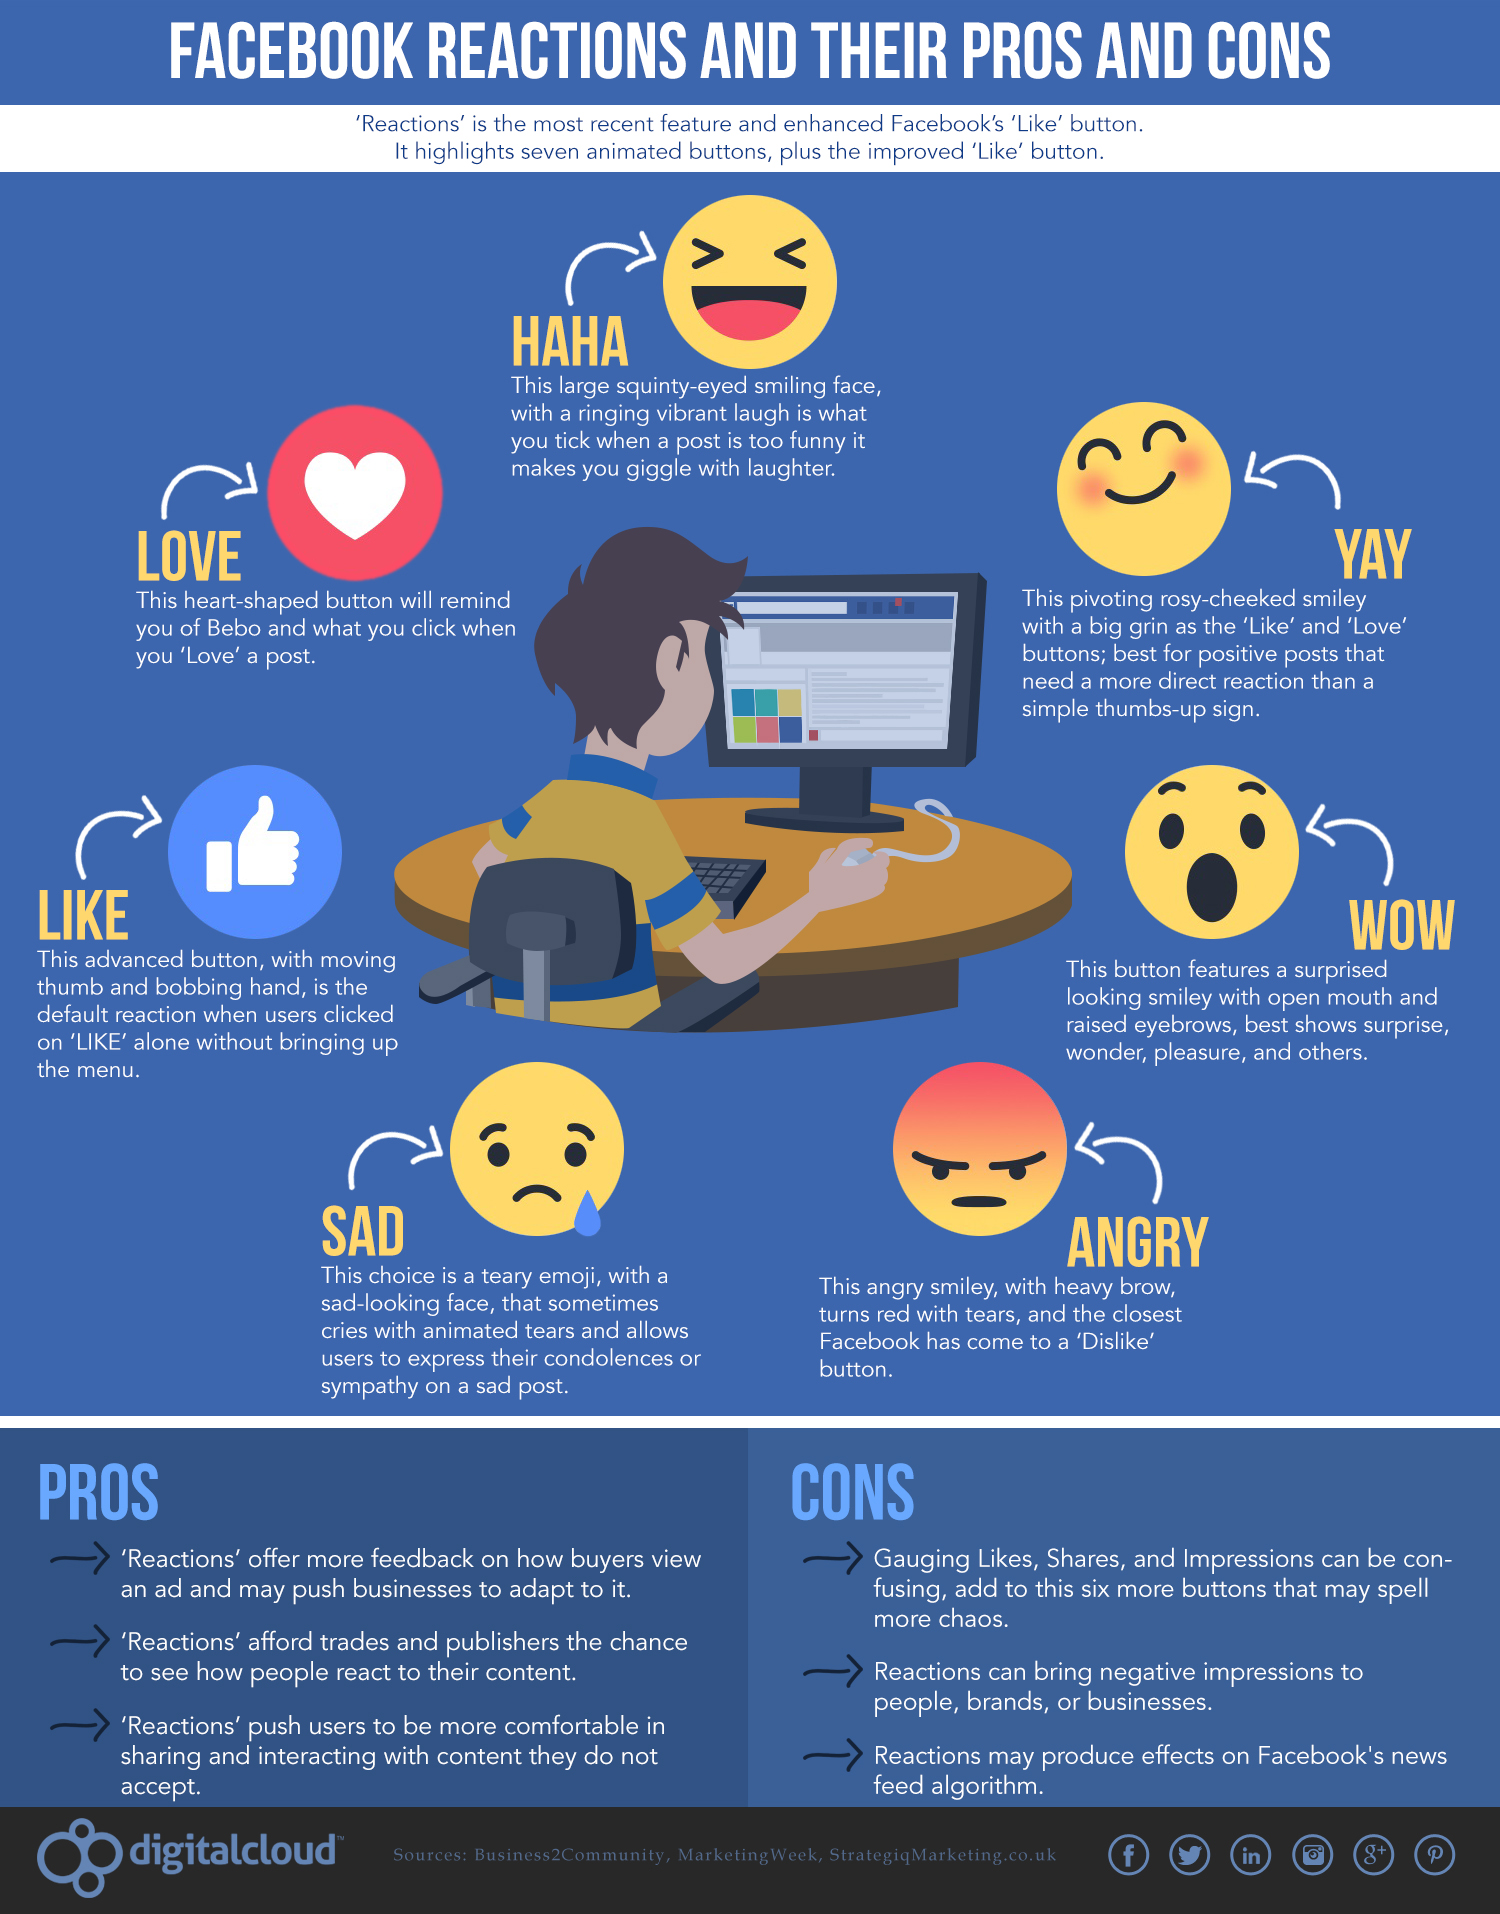 How ofter do you use Emoji on Facebook? They are so popular, so you can use Emoji in social media marketing too. Emoji or emotions are the little smiling faces, which you insert in the messages on social media. They help better express emotions and feelings. Check these tips on using Emoji in social media marketing to connect with your audience. #socialmedia #socialmediatips #socialmediamarketing #smm #socailmediastrategy #creativeentrepreneur #emoji